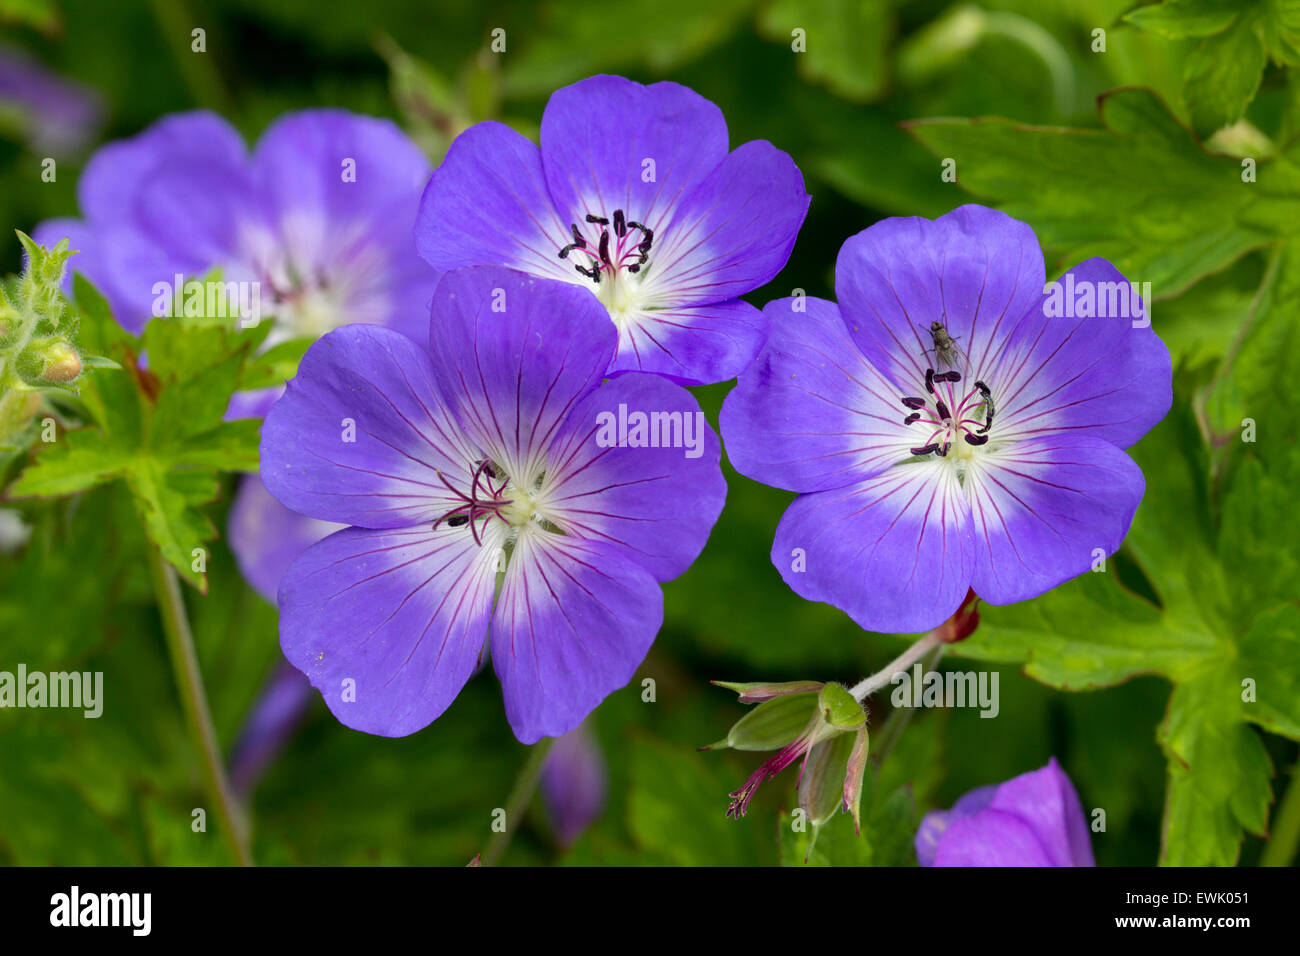 Flowers of the long blooming hardy Geranium 'Rozanne' Stock Photo